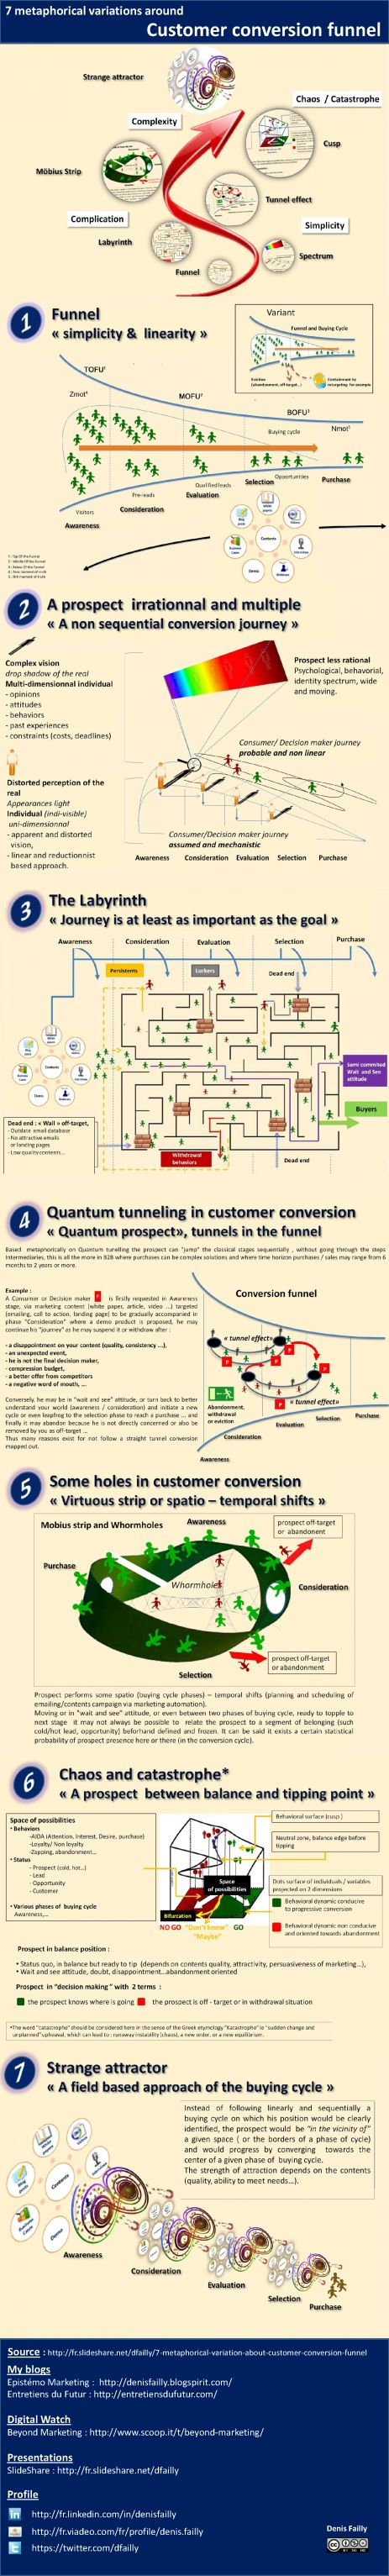 7 metaphorical variations about customer conversion funnel. The tunnel conventionally represented as conversion marketing funnel is a simple representation; understandable that take place in a sequenced process of buying cycle (phase by phase), programmatic ...